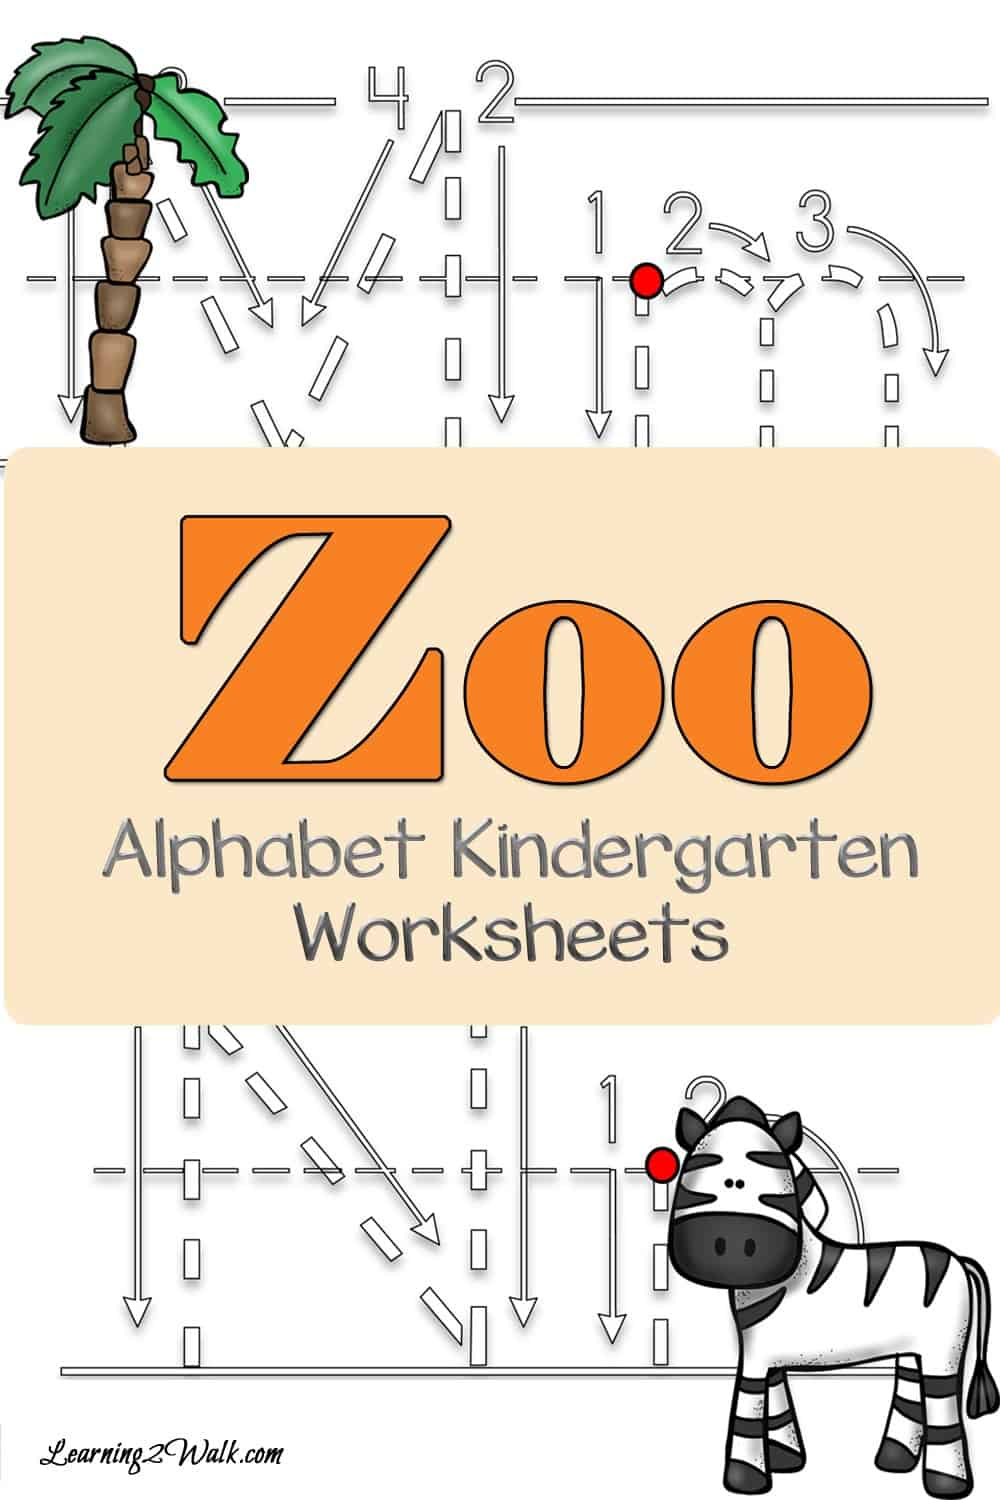 Working on writing the letters of the alphabet? Why not use these zoo alphabet kindergarten worksheets to help?